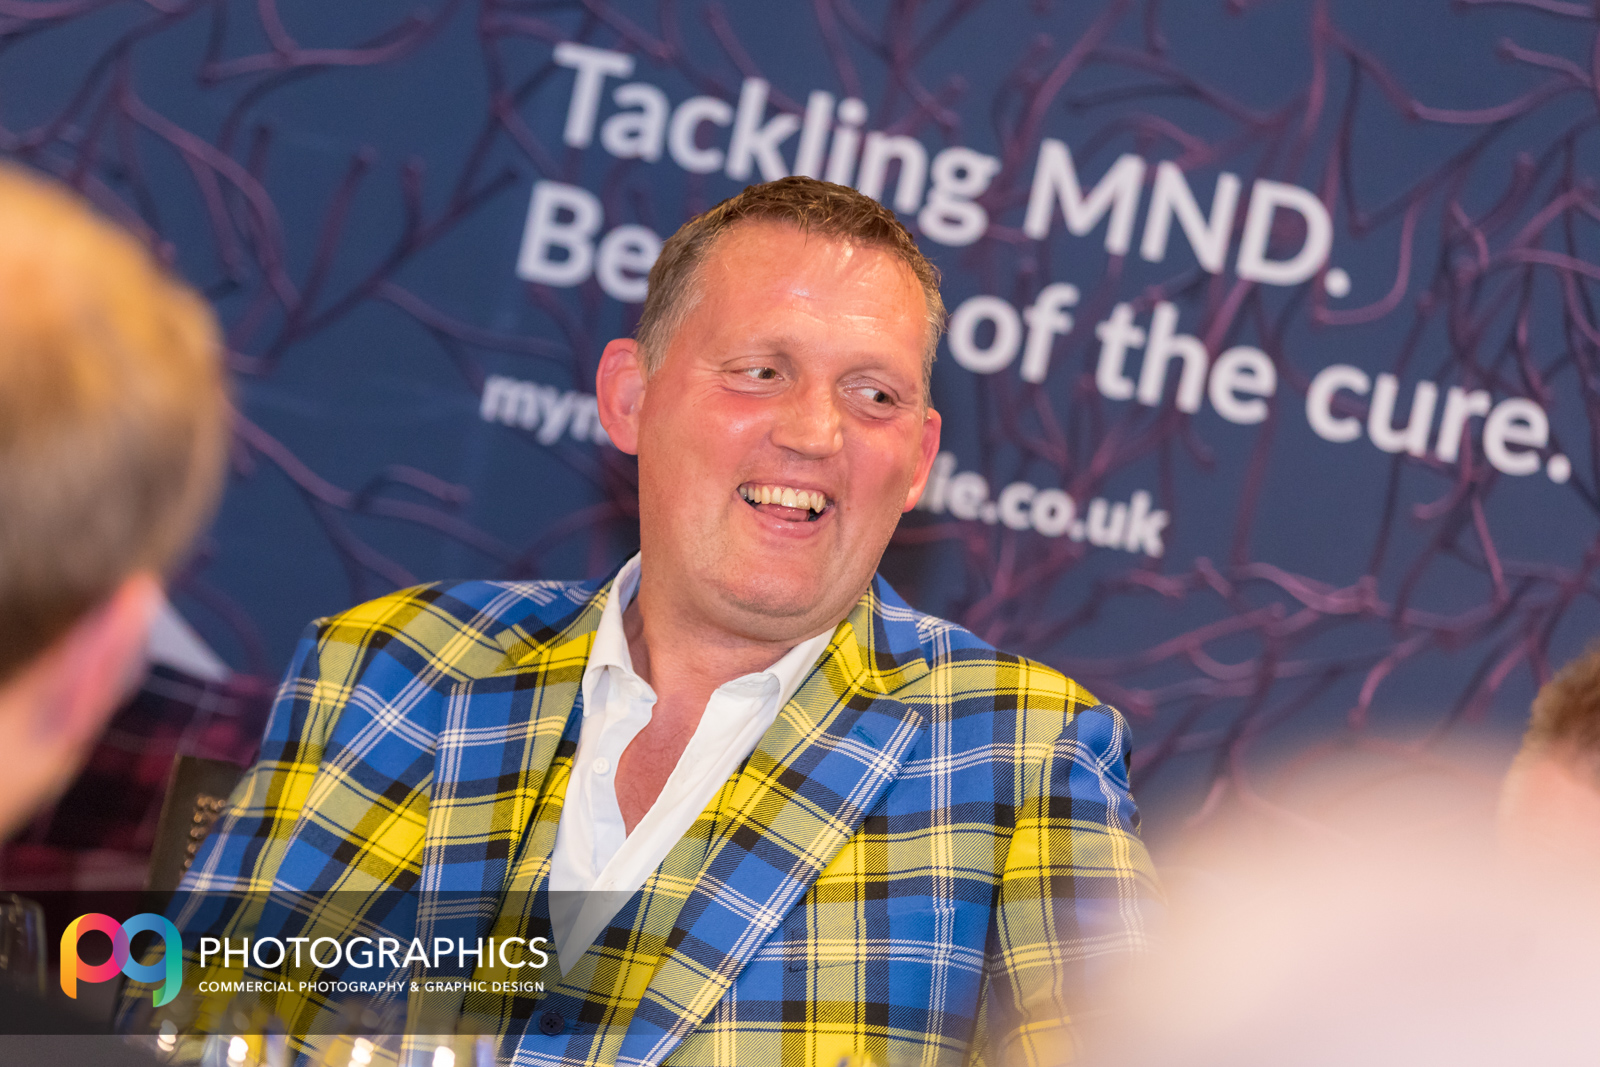 charity-golf-pr-event-photography-glasgow-edinburgh-scotland-32.jpg